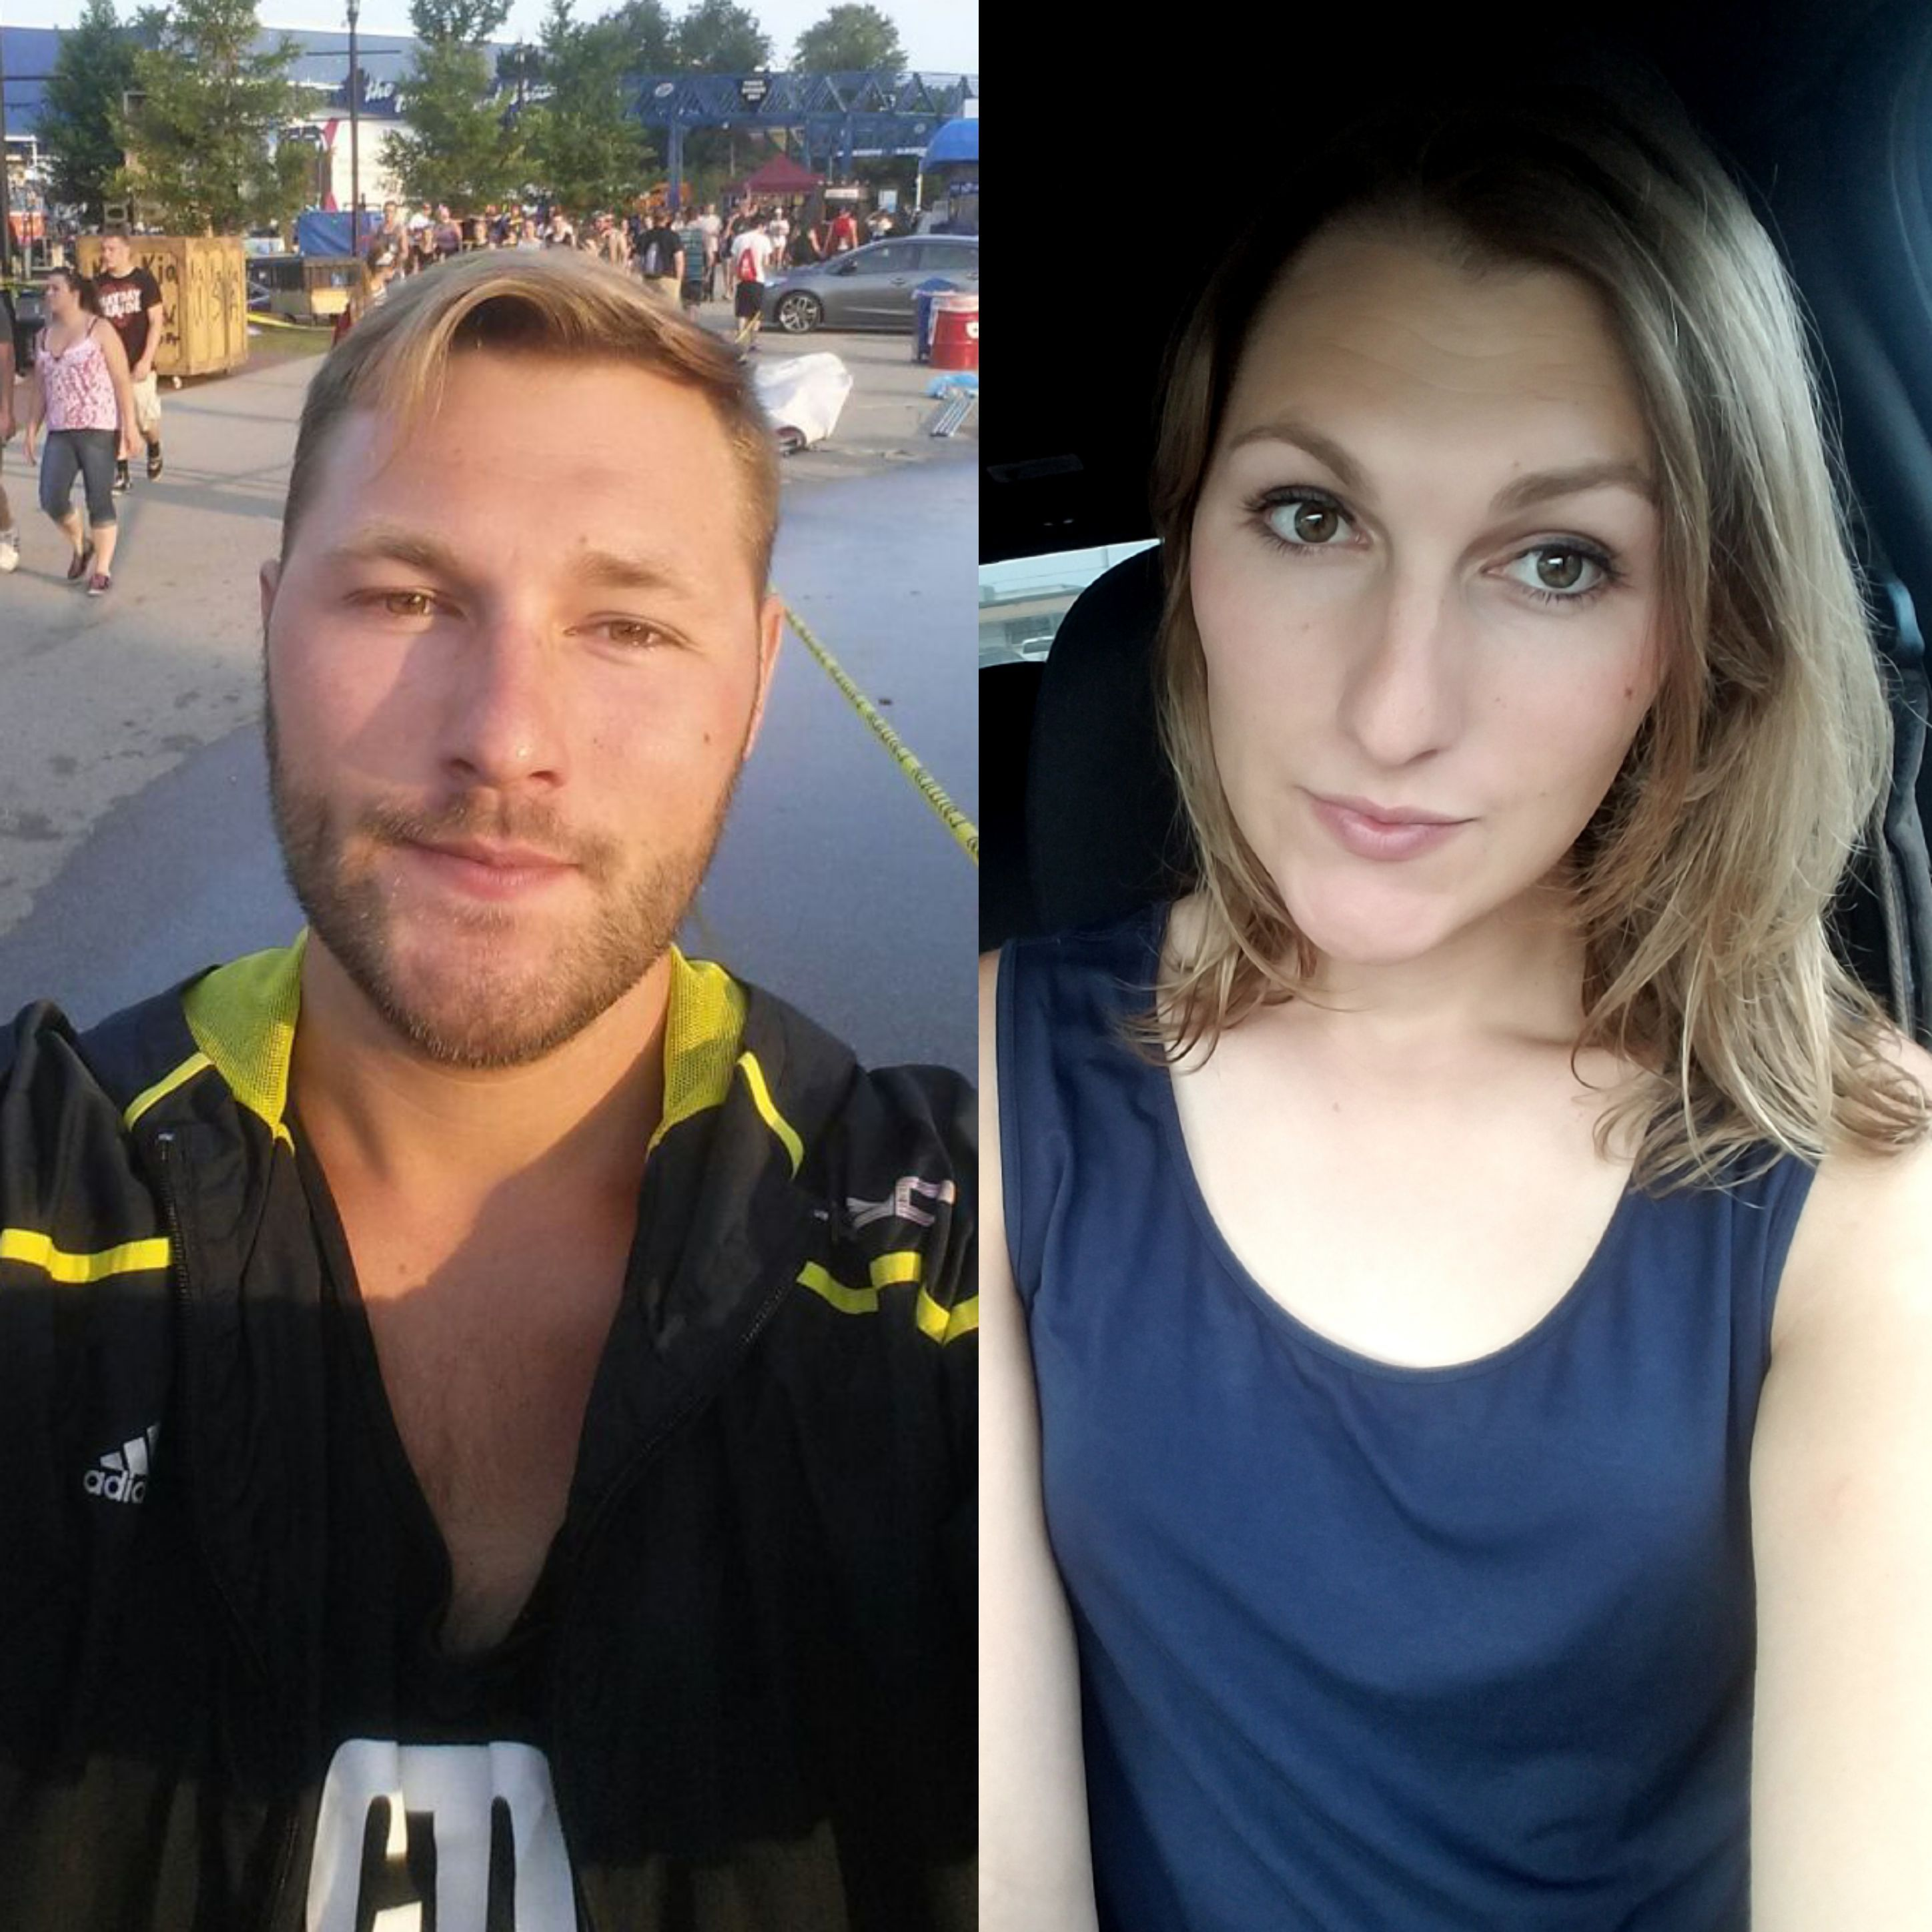 image Lux lives gender transformation pov vr